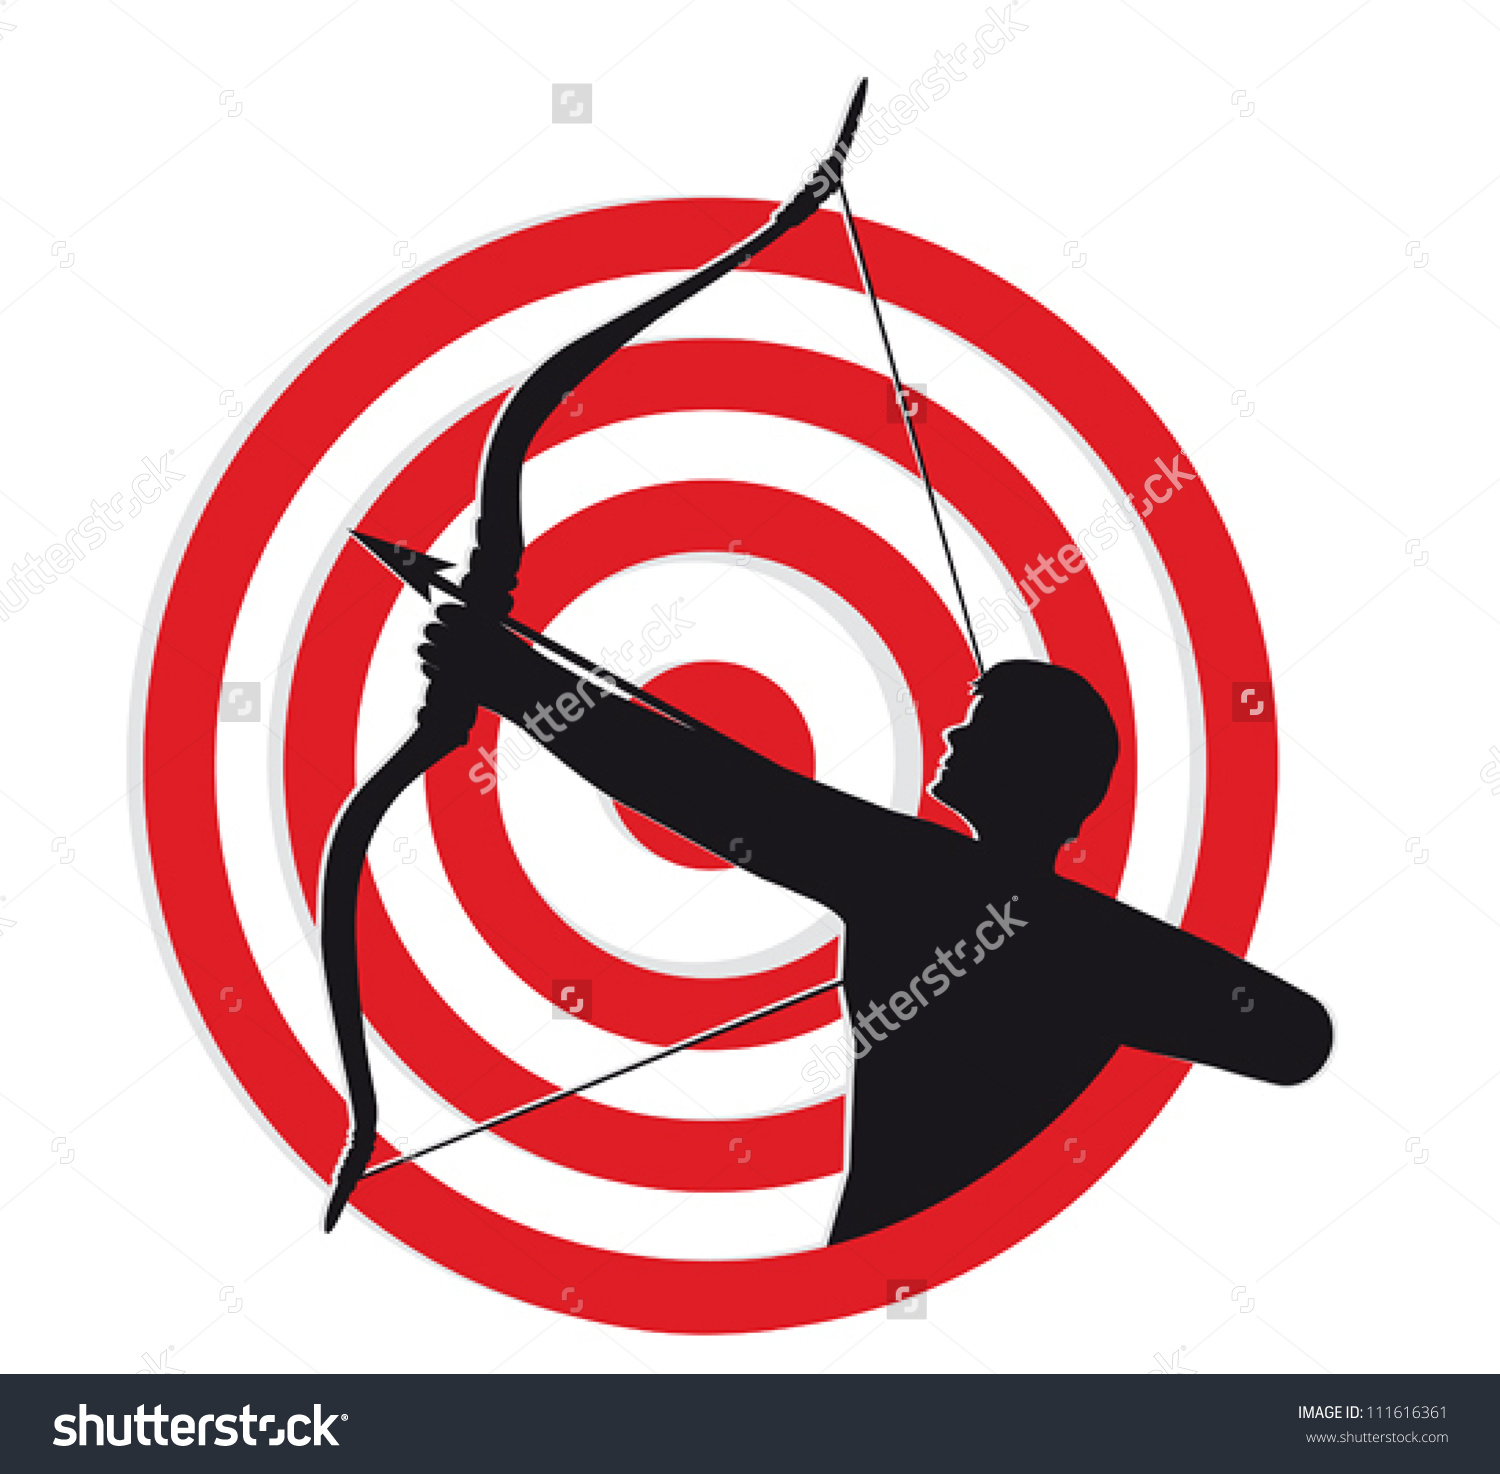 Arrow circle target clipart transparent download Archer Target Silhouette Archer Pulling Bow Stock Vector 111616361 ... transparent download